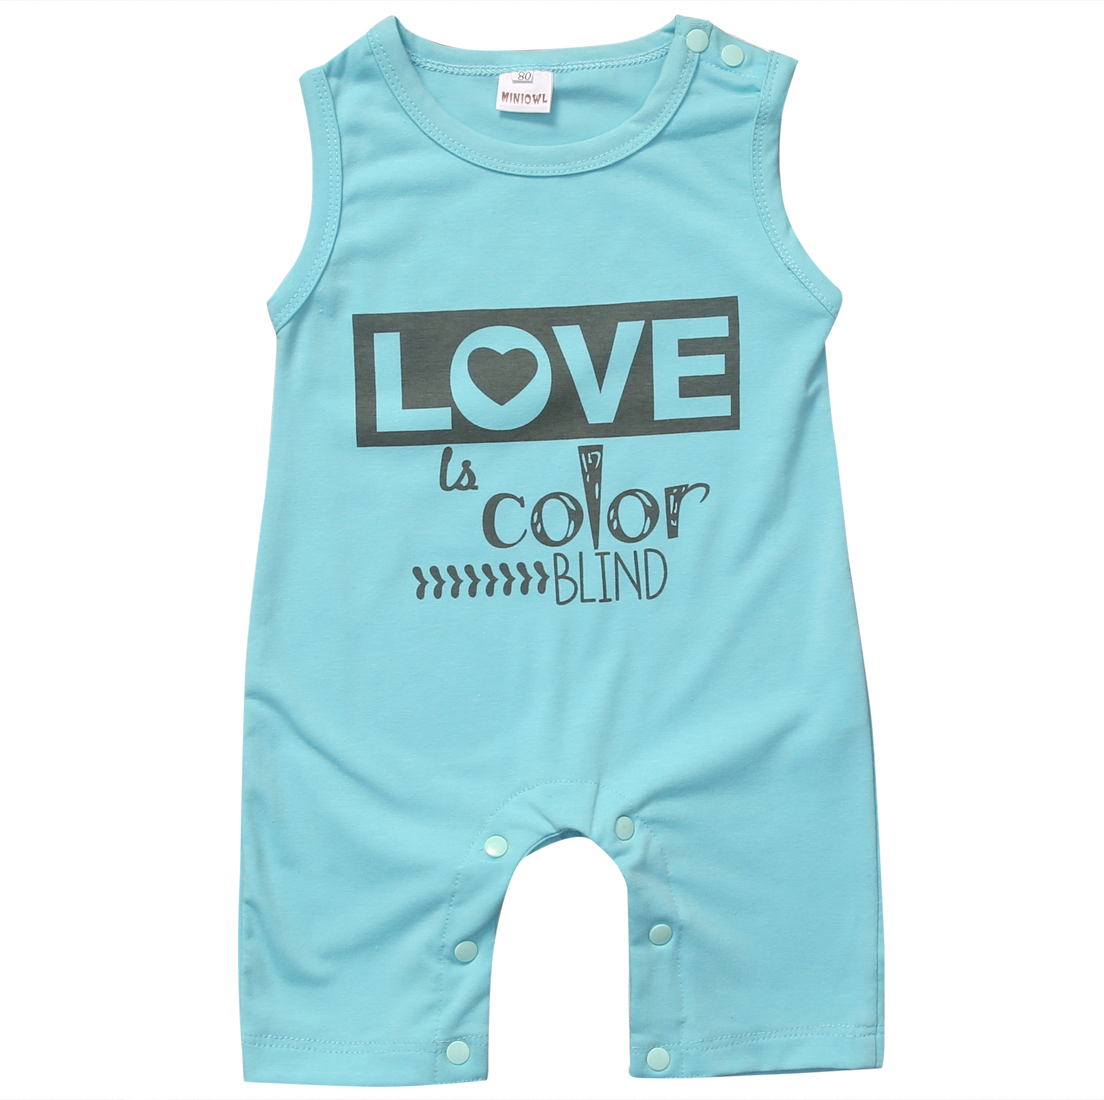 2017 Newborn Kid Baby Boy Girl Cotton Romper Jumpsuit Causal Sleeveless Love Bodysuit Infant Playsuit Blue Clothes Summer Outfit infant baby girls romper lace floral sleeveless belt romper jumpsuit playsuit one piece outfit summer newborn baby girl clothes